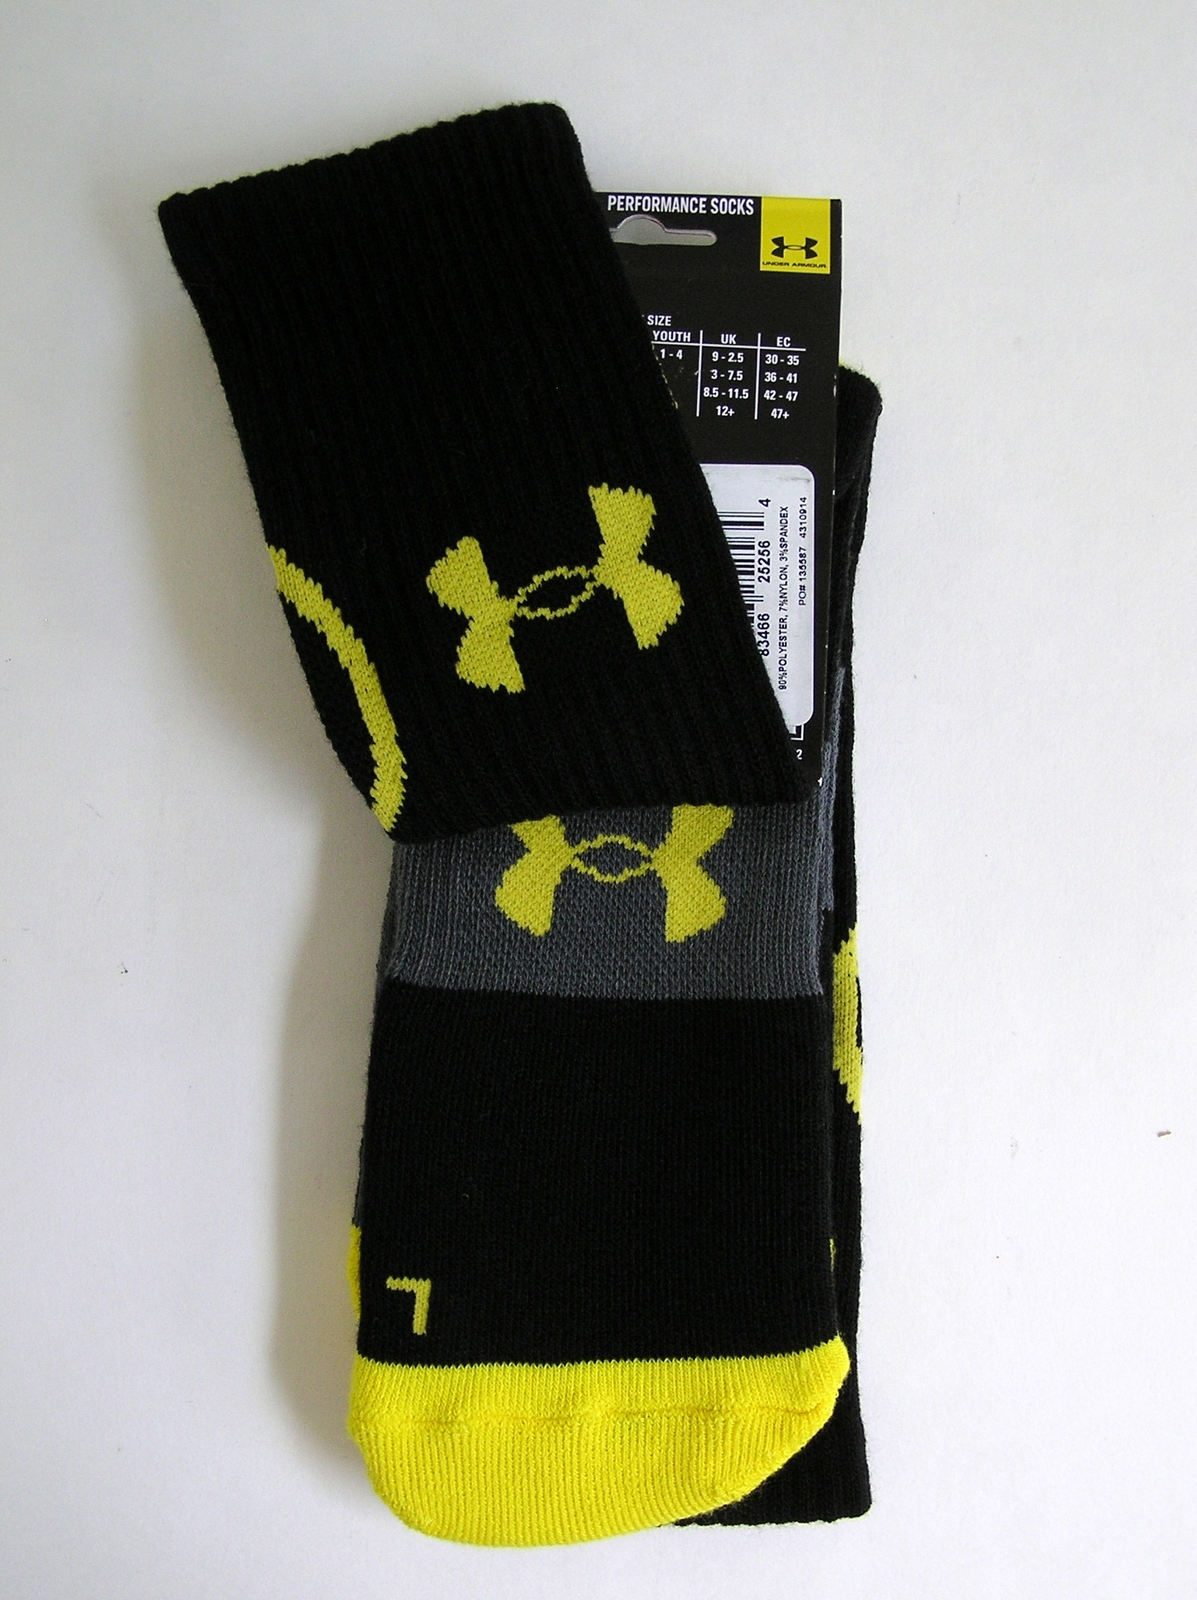 NWT Under Armour Performance Youth Over The Calf Socks Large 2 Pair Sz 1-4 Black